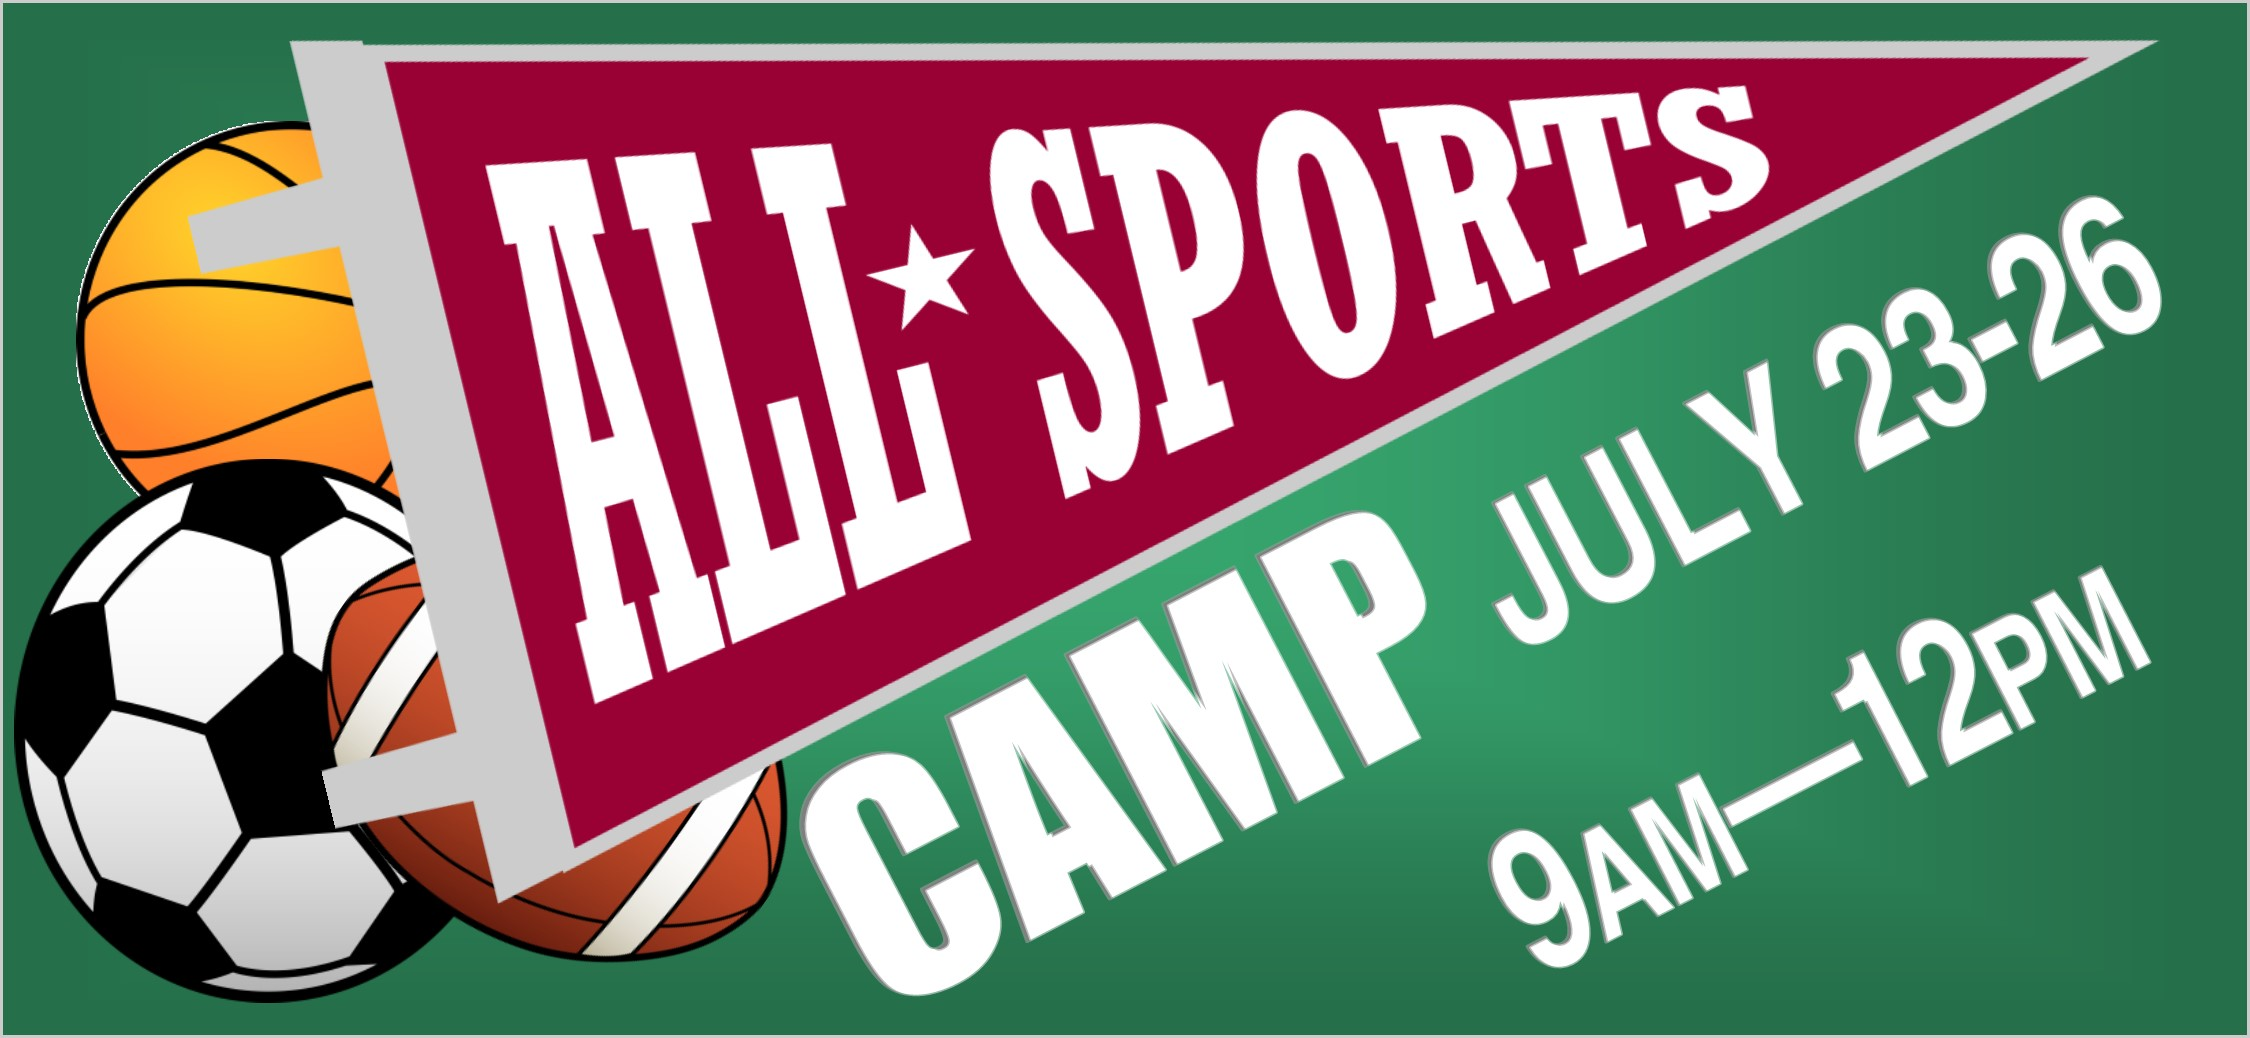 All Sports Camp Art for Web Page Slider 050818.jpg